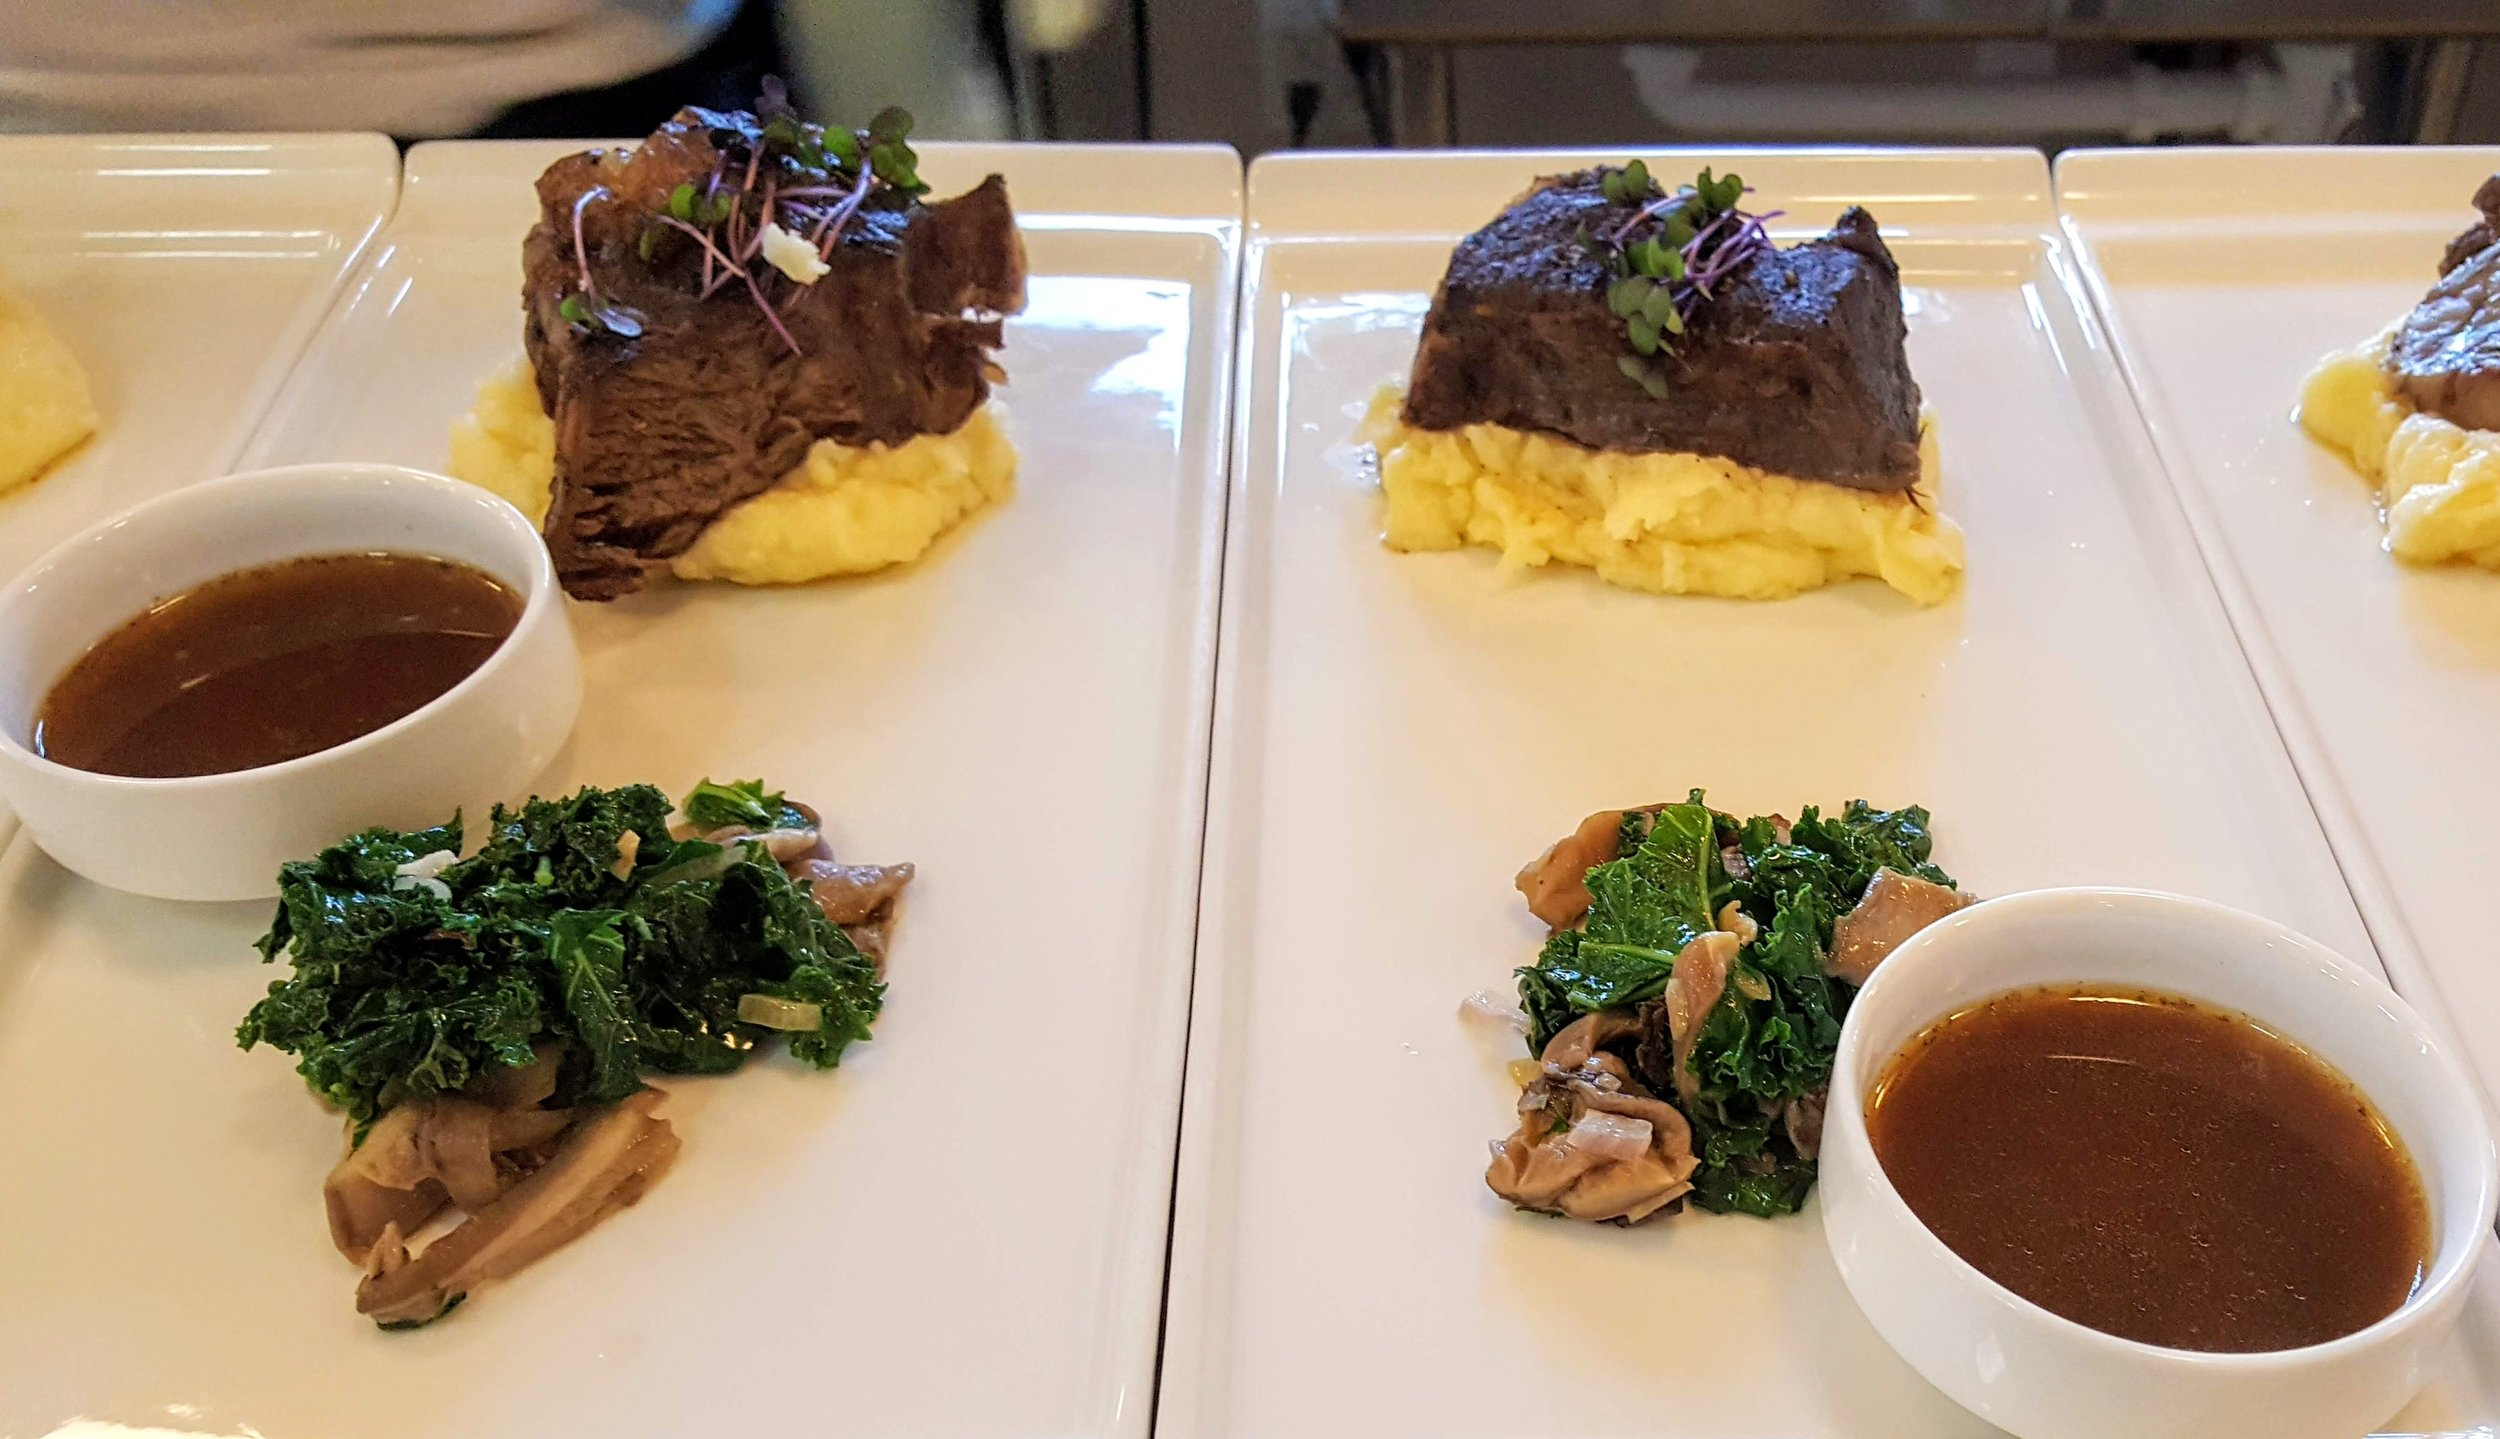 Red Wine Braised Short Ribs  Whipped yukon gold potatoes with chevre, blue oyster mushrooms, kale, braising jus